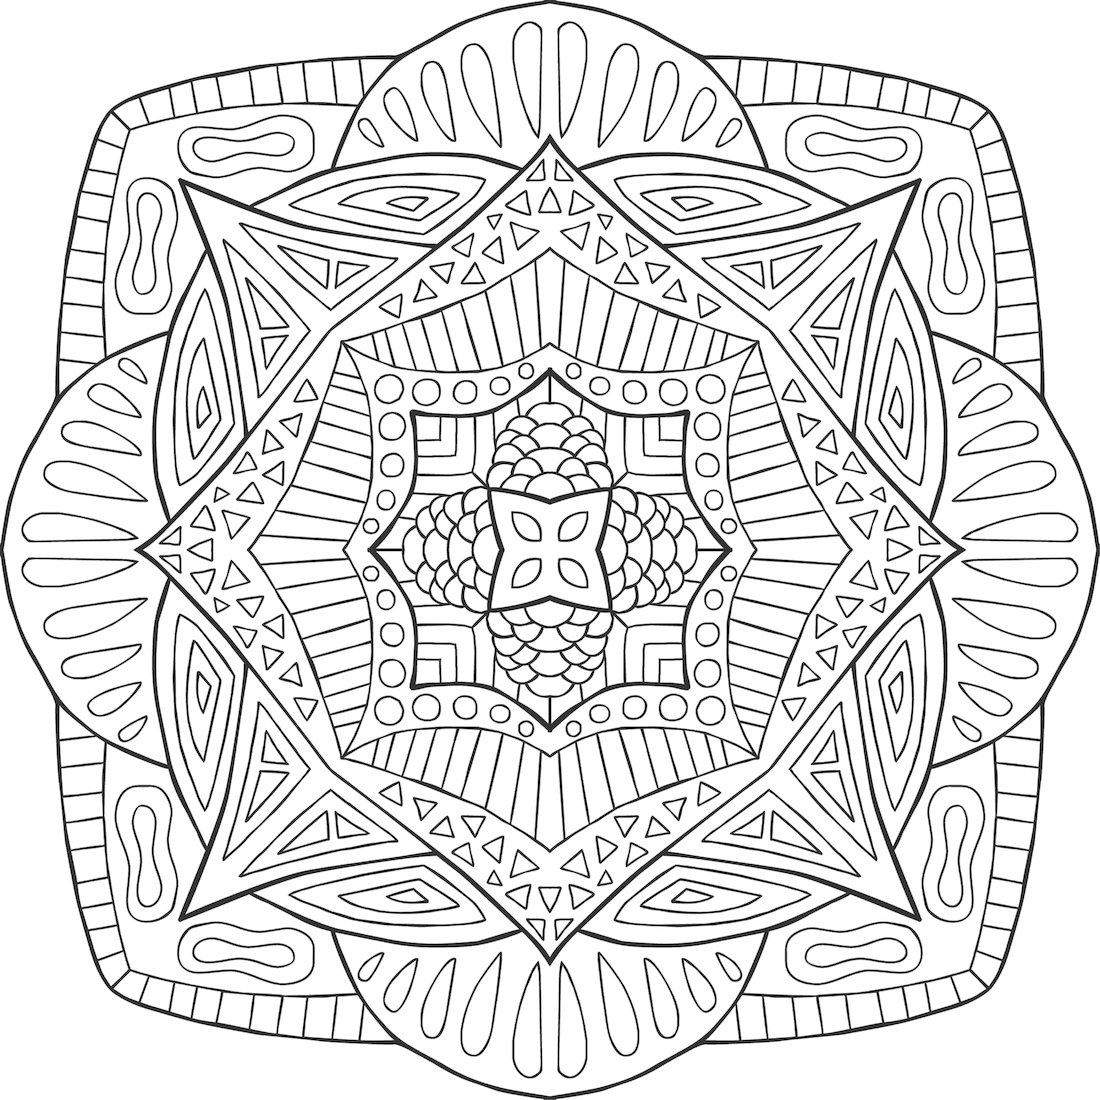 Picture of Rupa in Balance coloring page